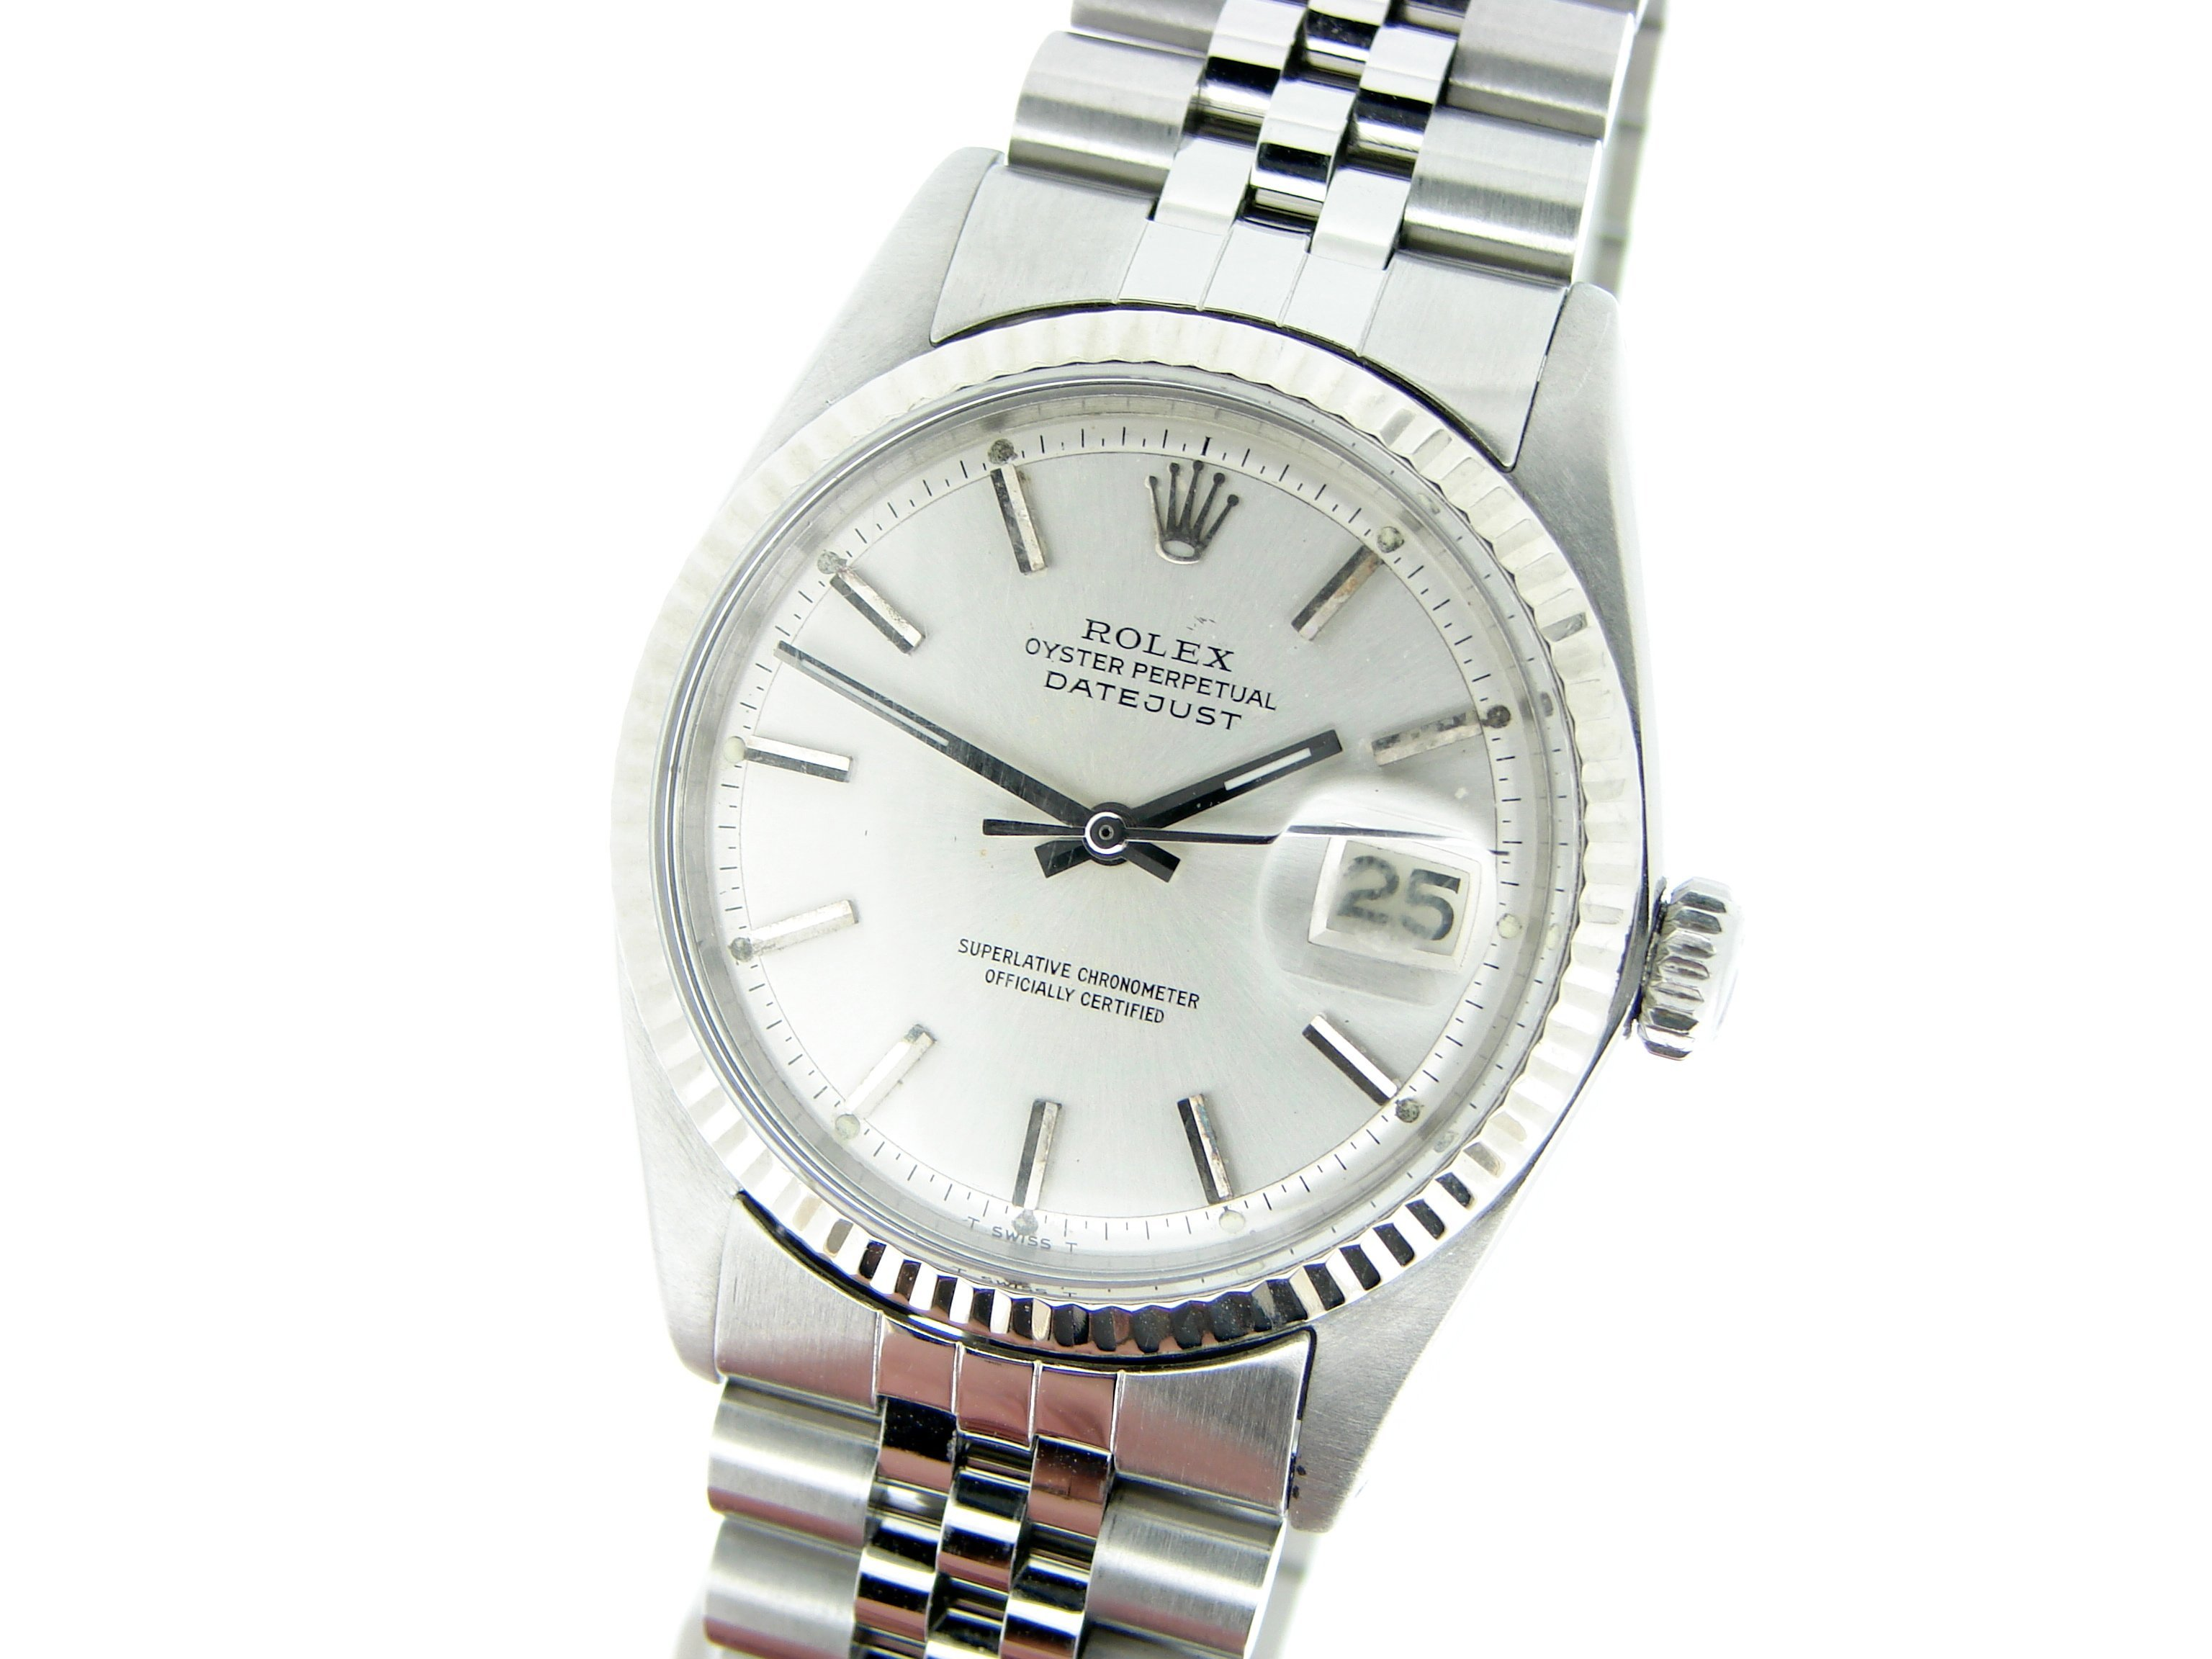 ... /Sale/Product-Details/2767/Rolex/Rolex-Datejust-36mm-Mens-18kSS.html